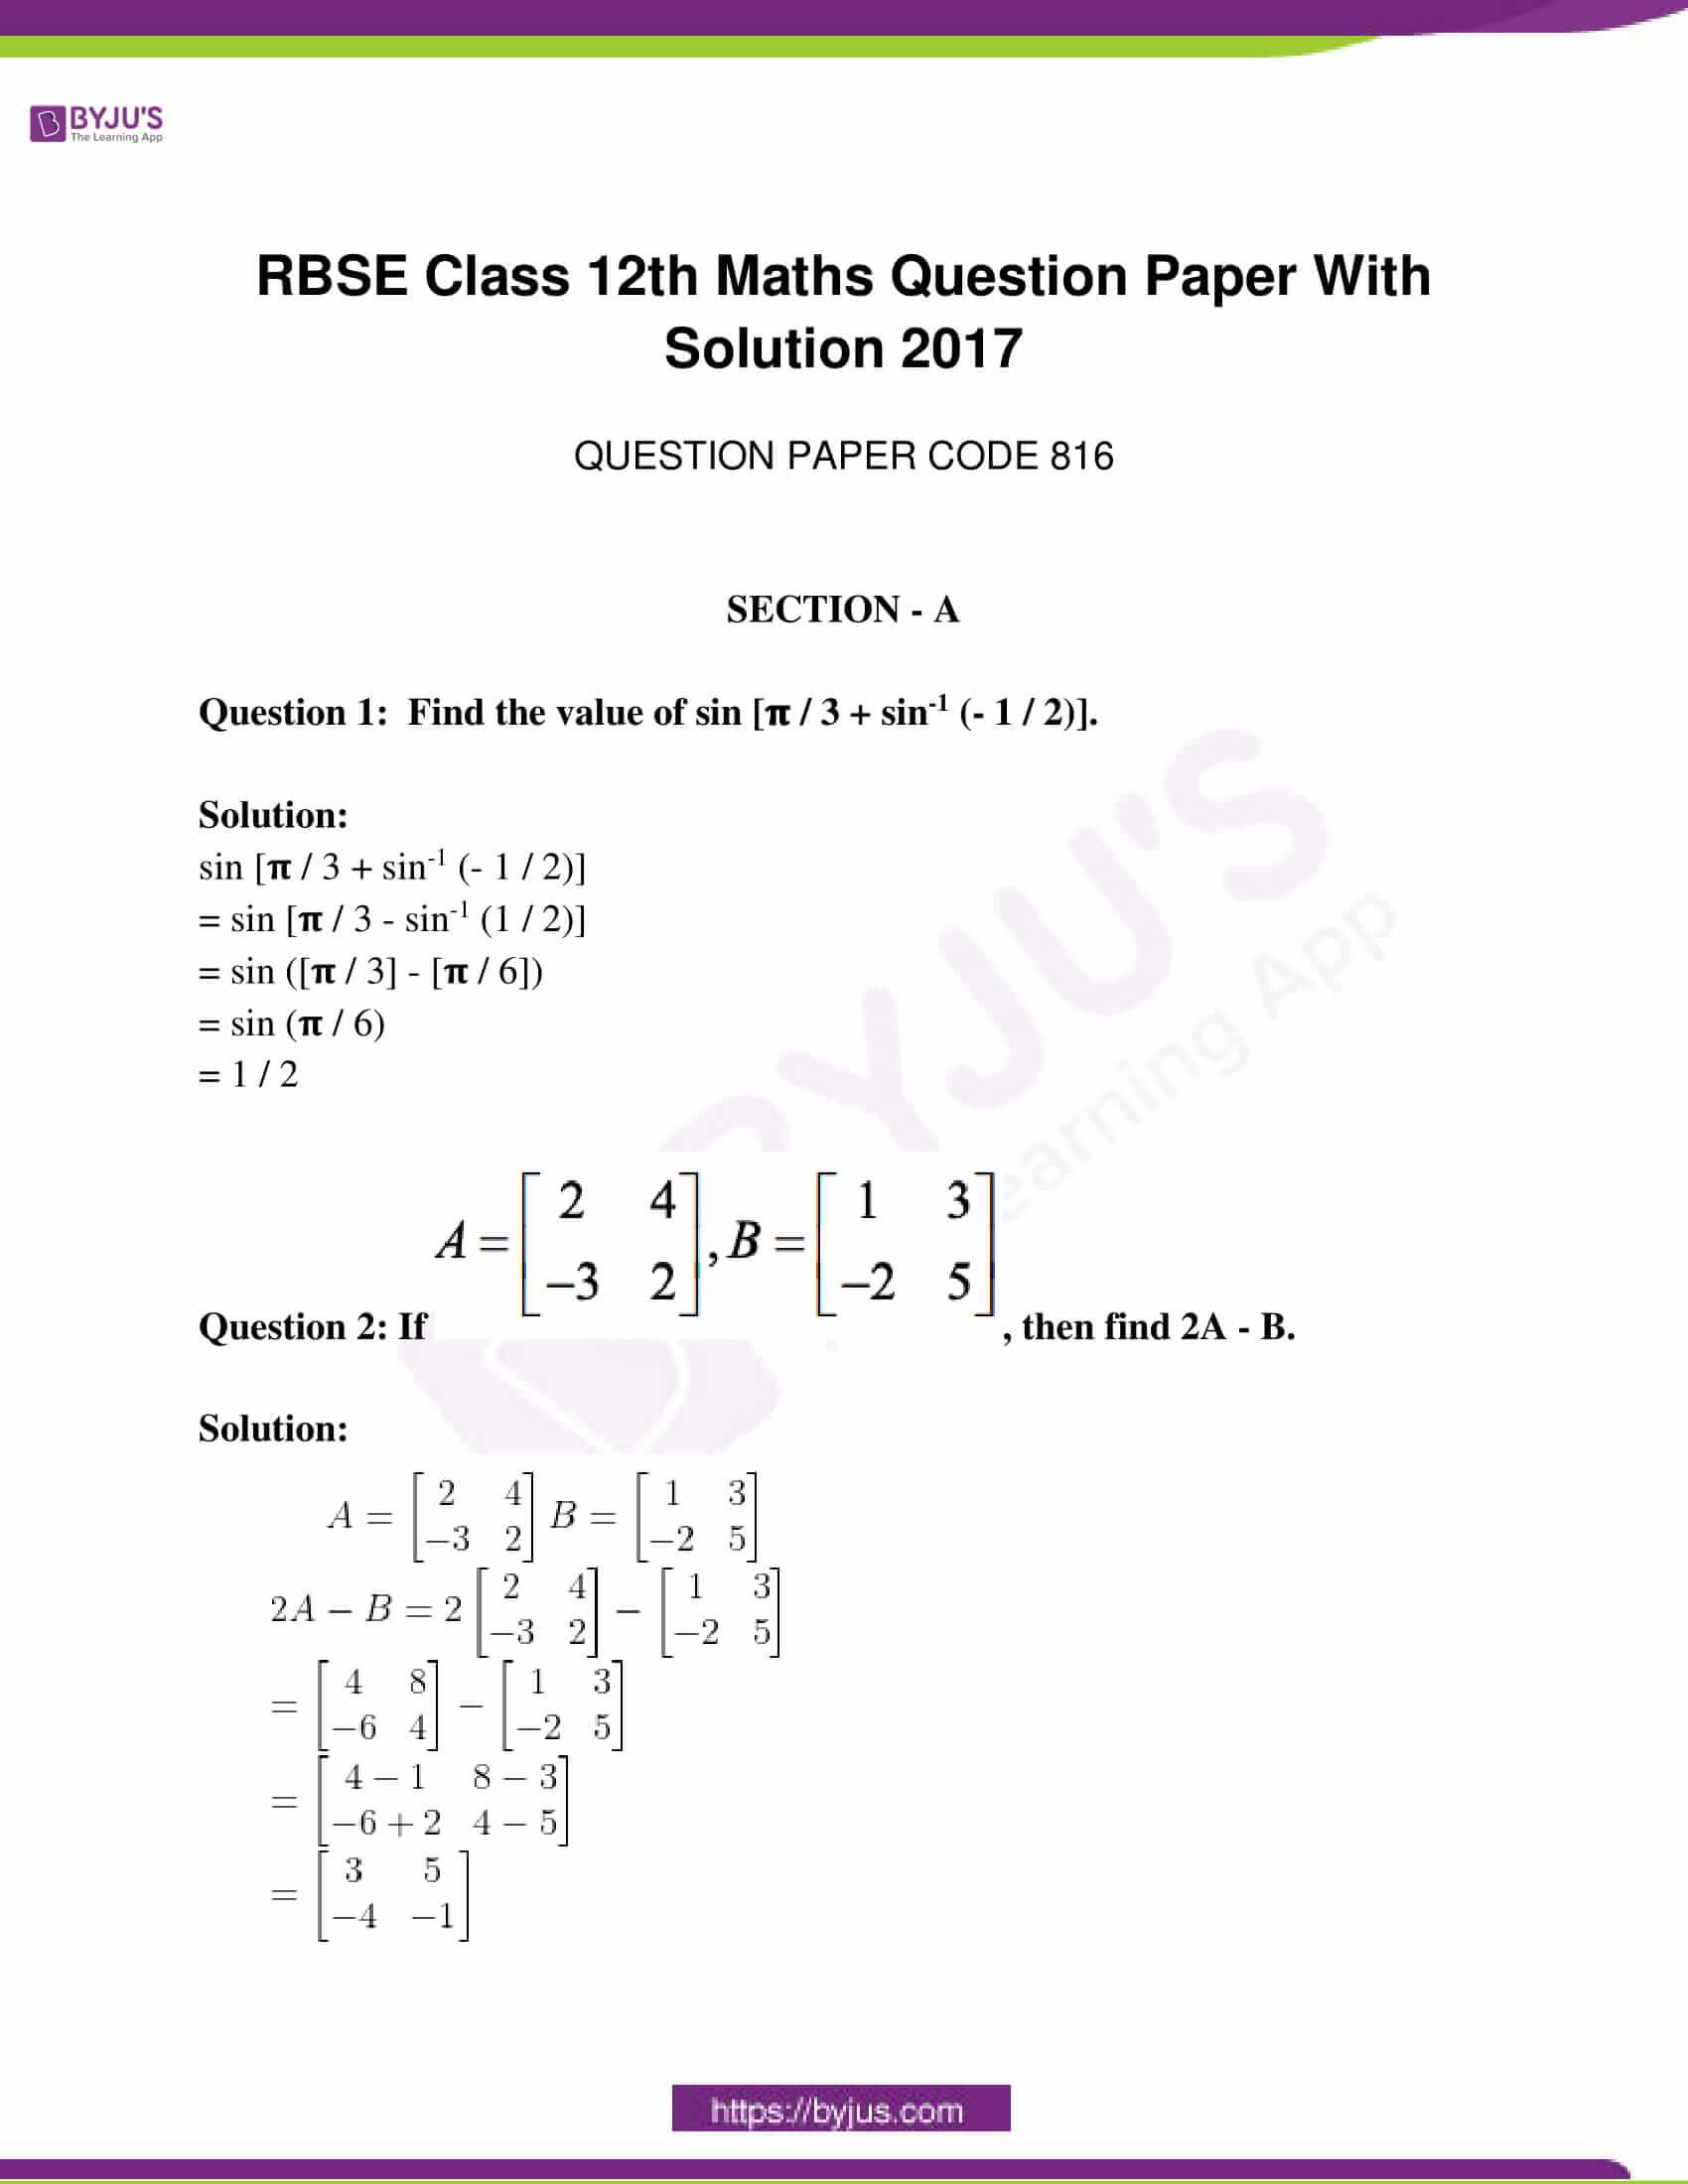 rajasthan class 12 exam question paper solutions march 2017 01